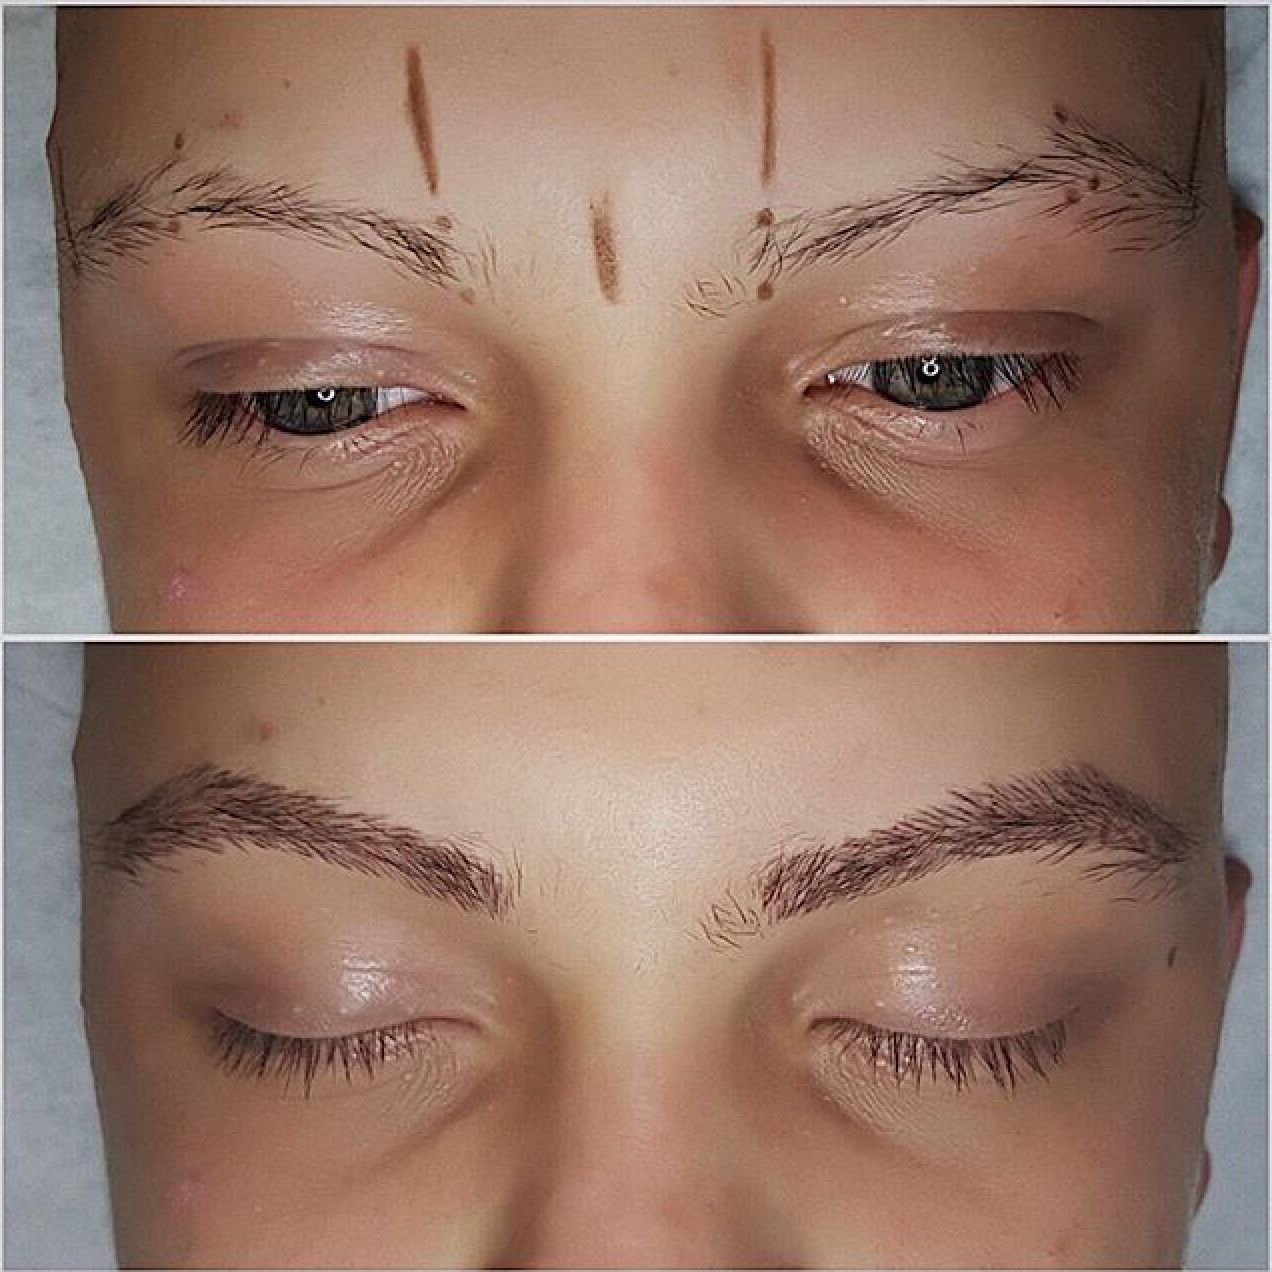 Love this microblading job done by bliss_studiojhb on